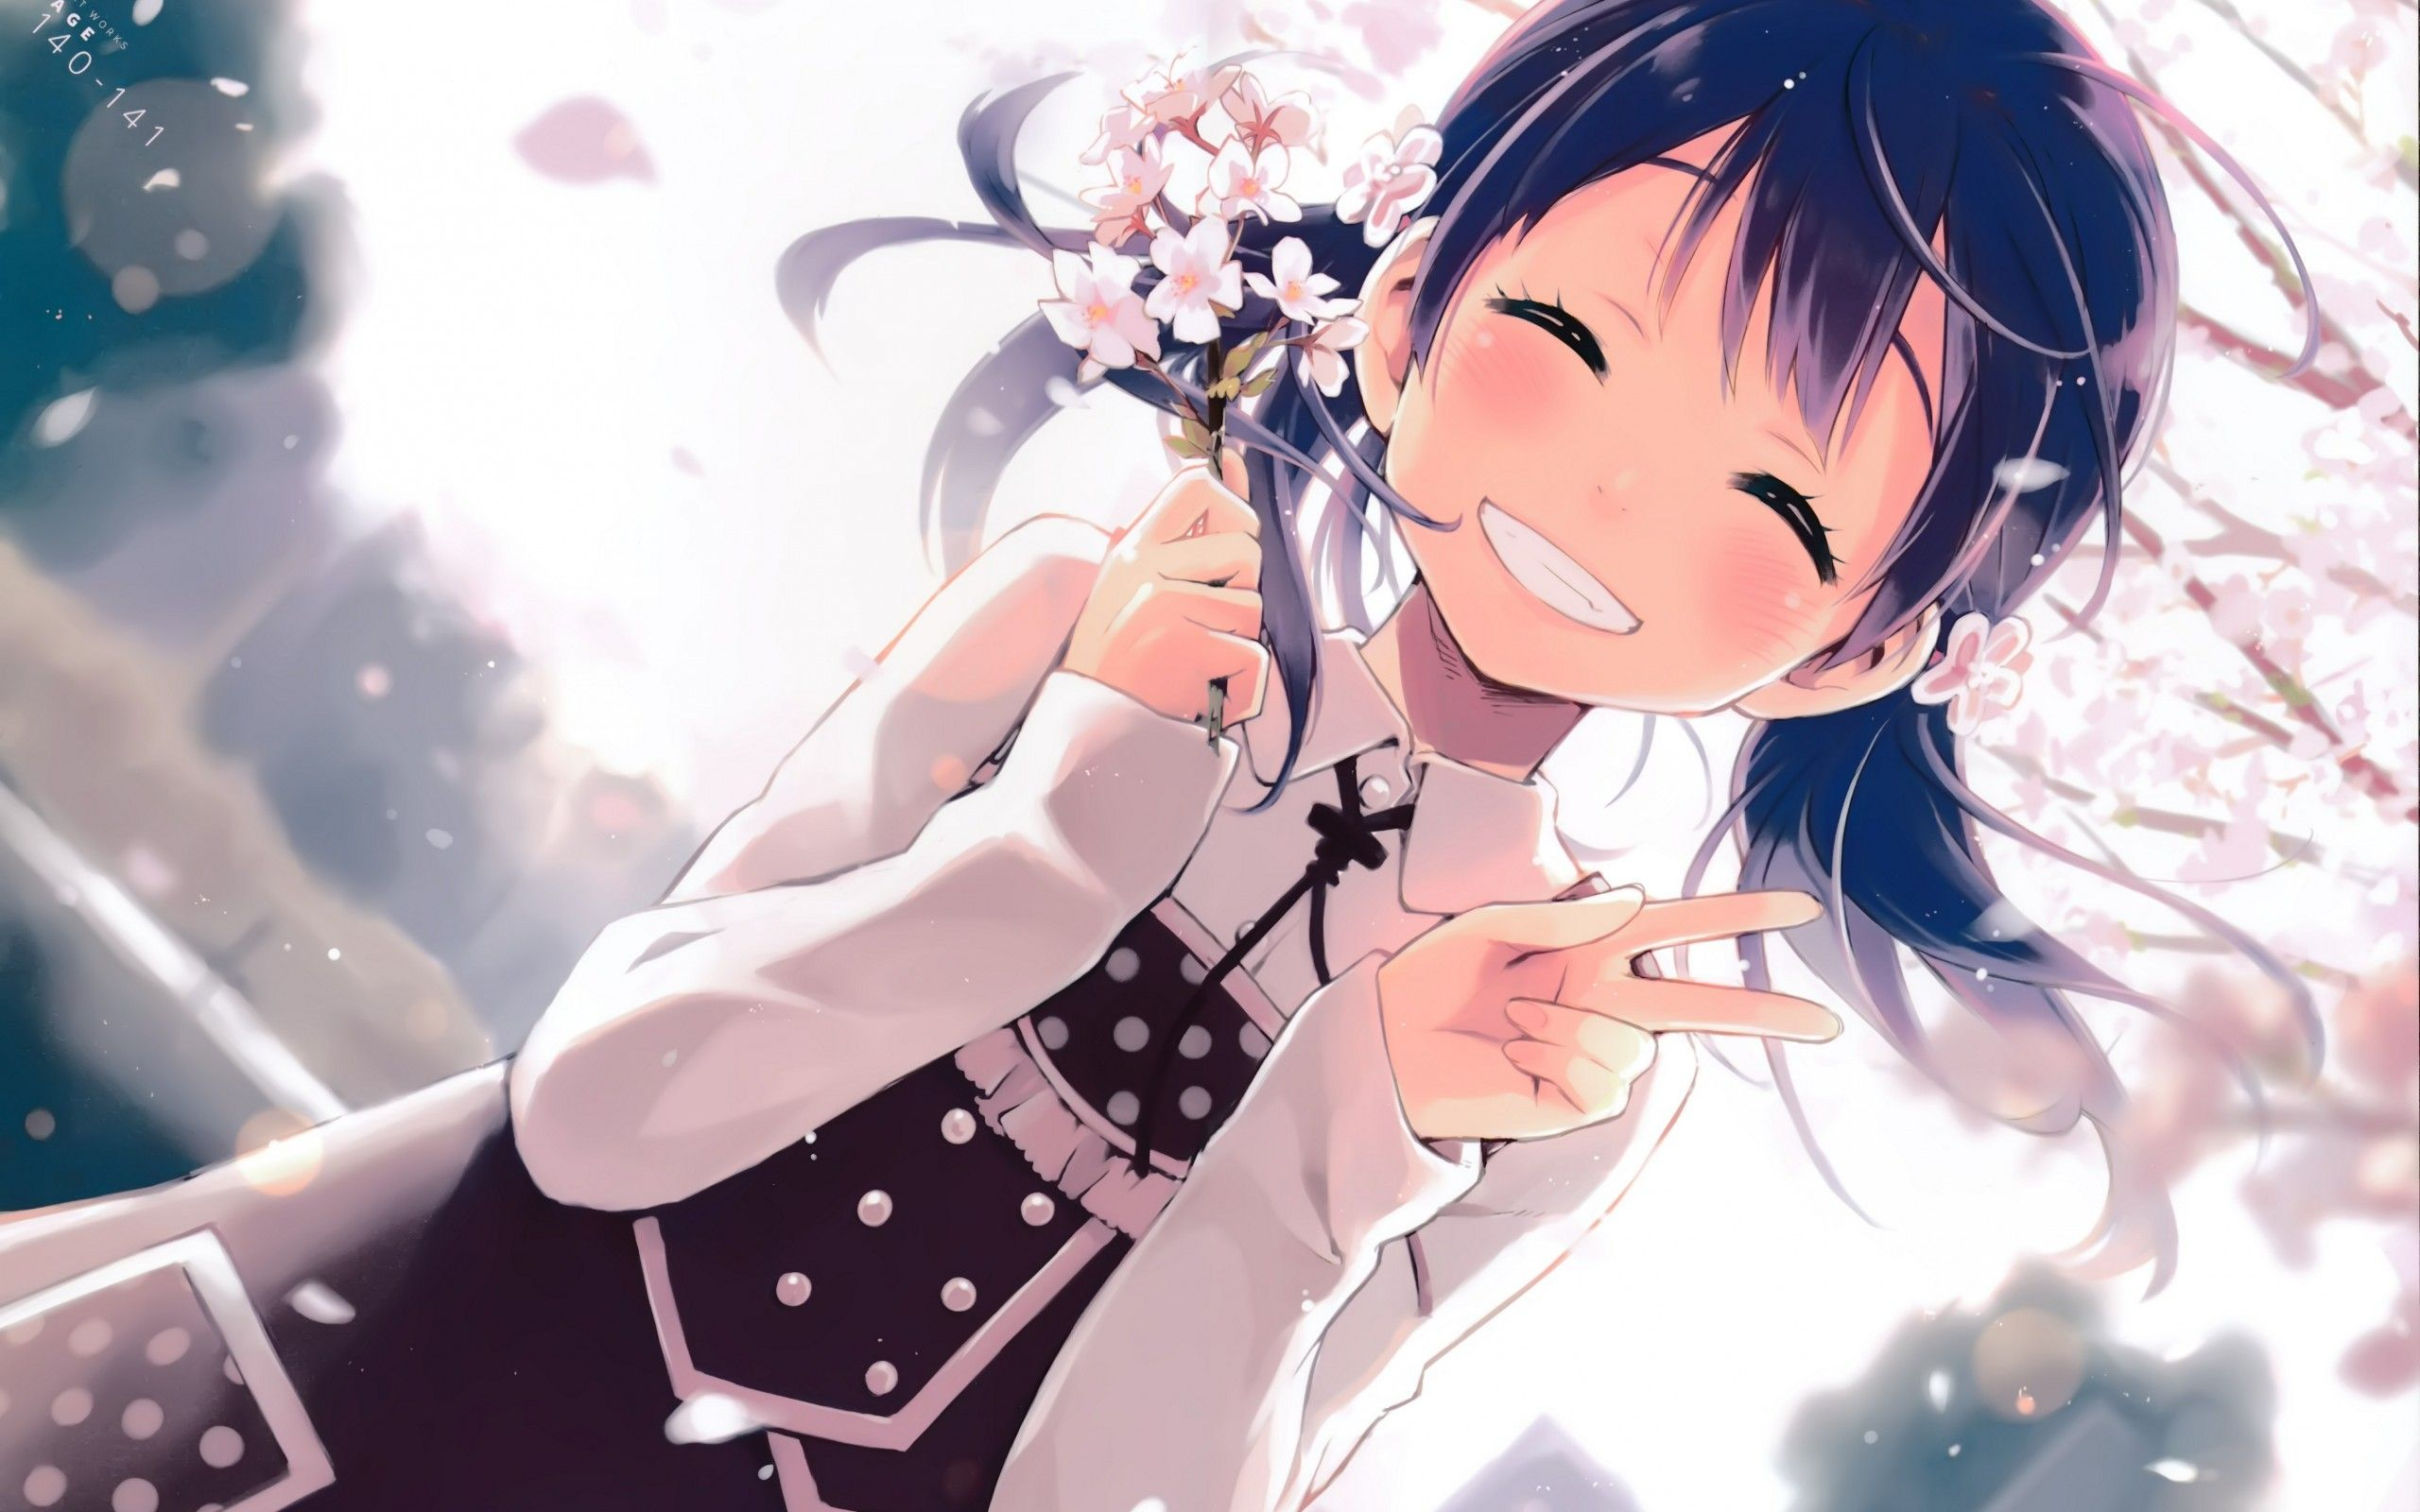 Anime Girl Smiling Wallpapers - Wallpaper Cave